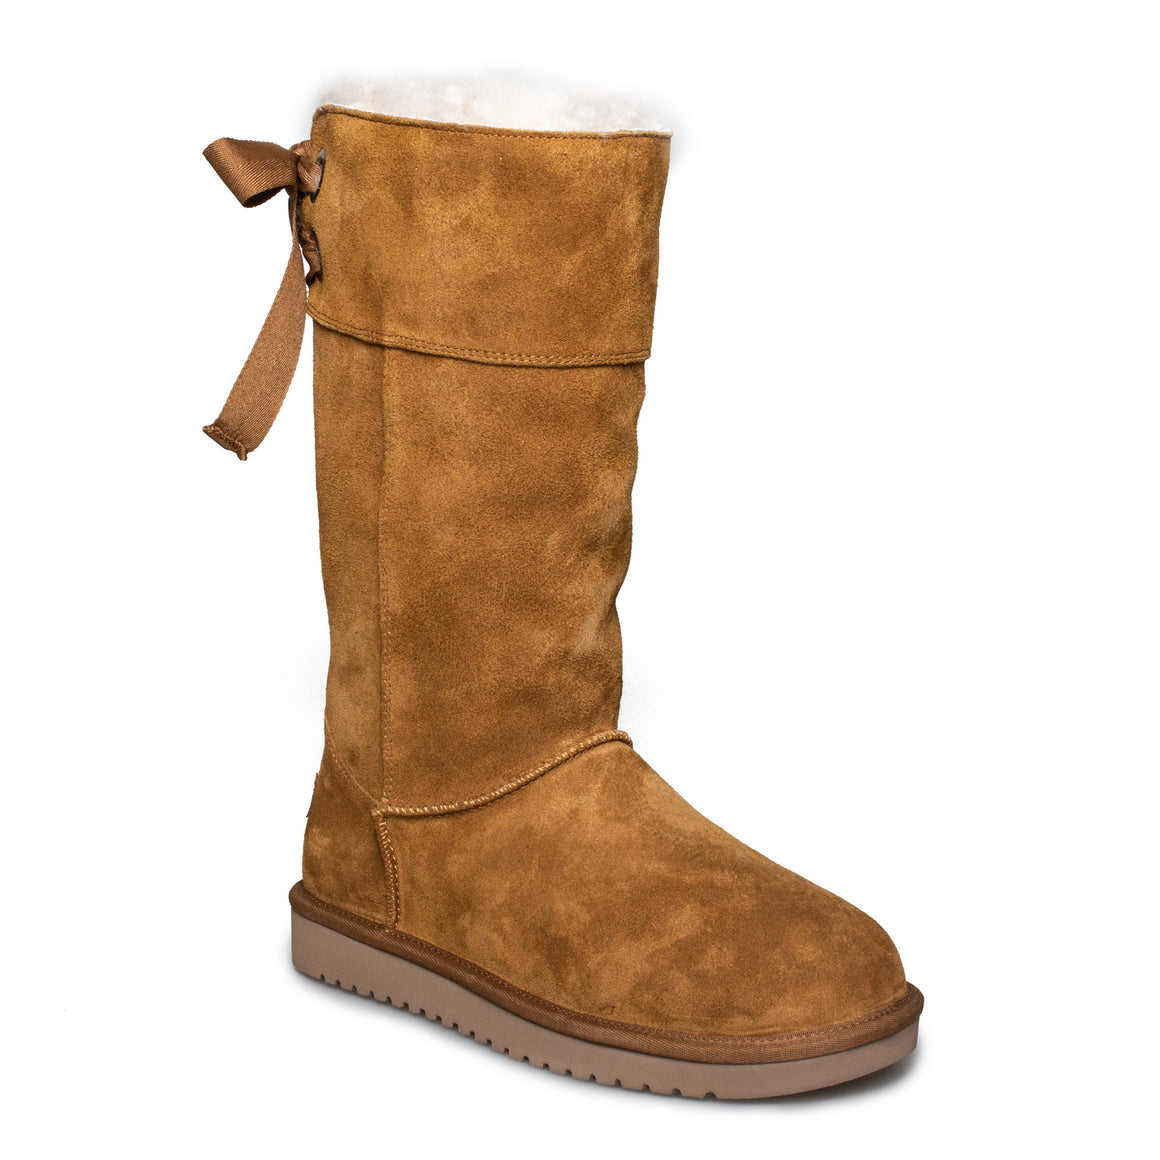 Koolaburra By UGG Andrah Tall Chestnut Boots - Women's